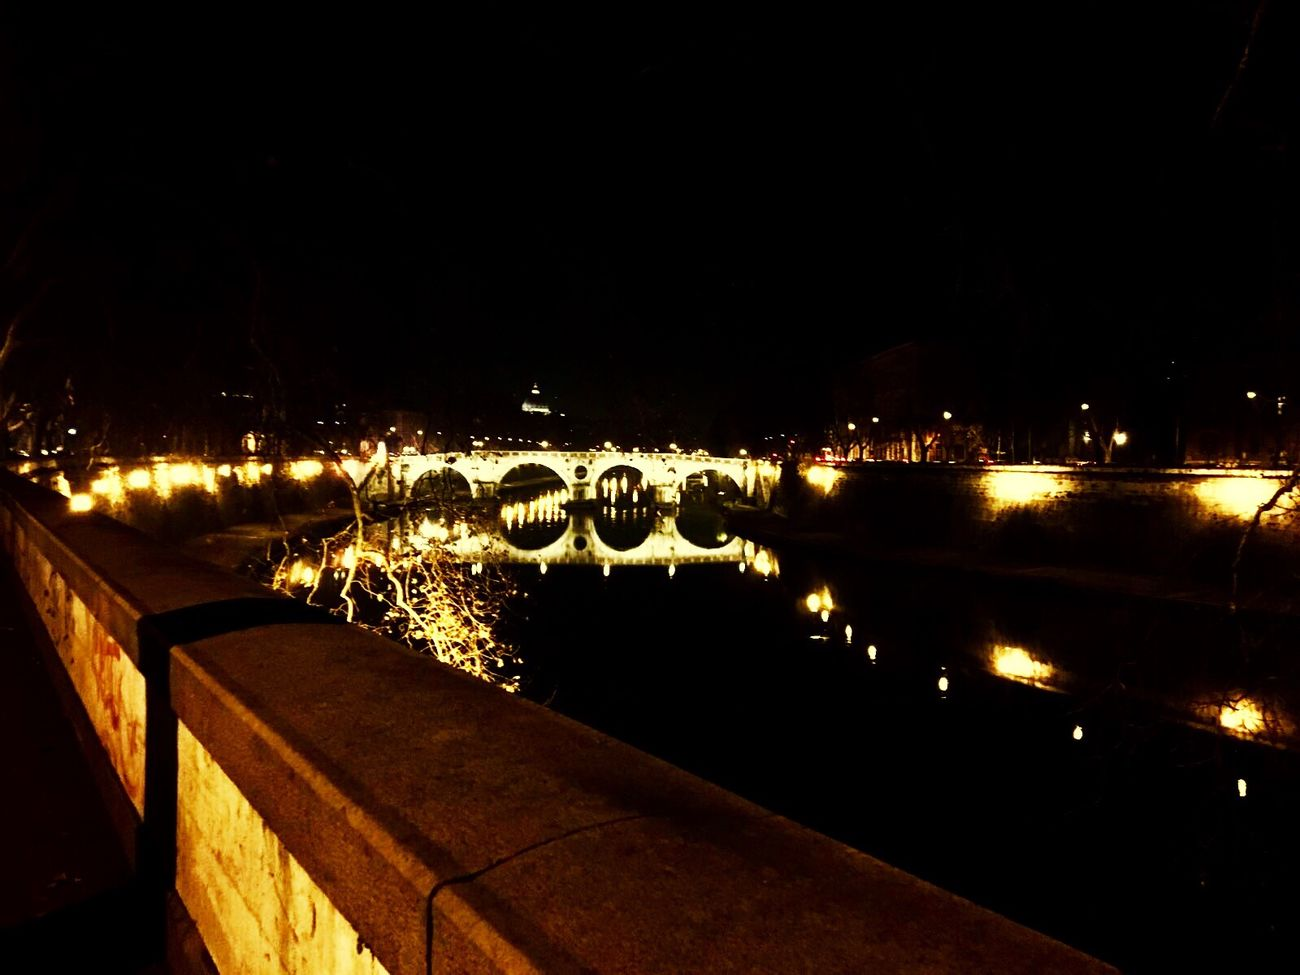 Hello World Cheese! Enjoying Life Taking Photos Aroundrome Rome Trastevere Tevere River River View Italy Landscape Hello World WOW